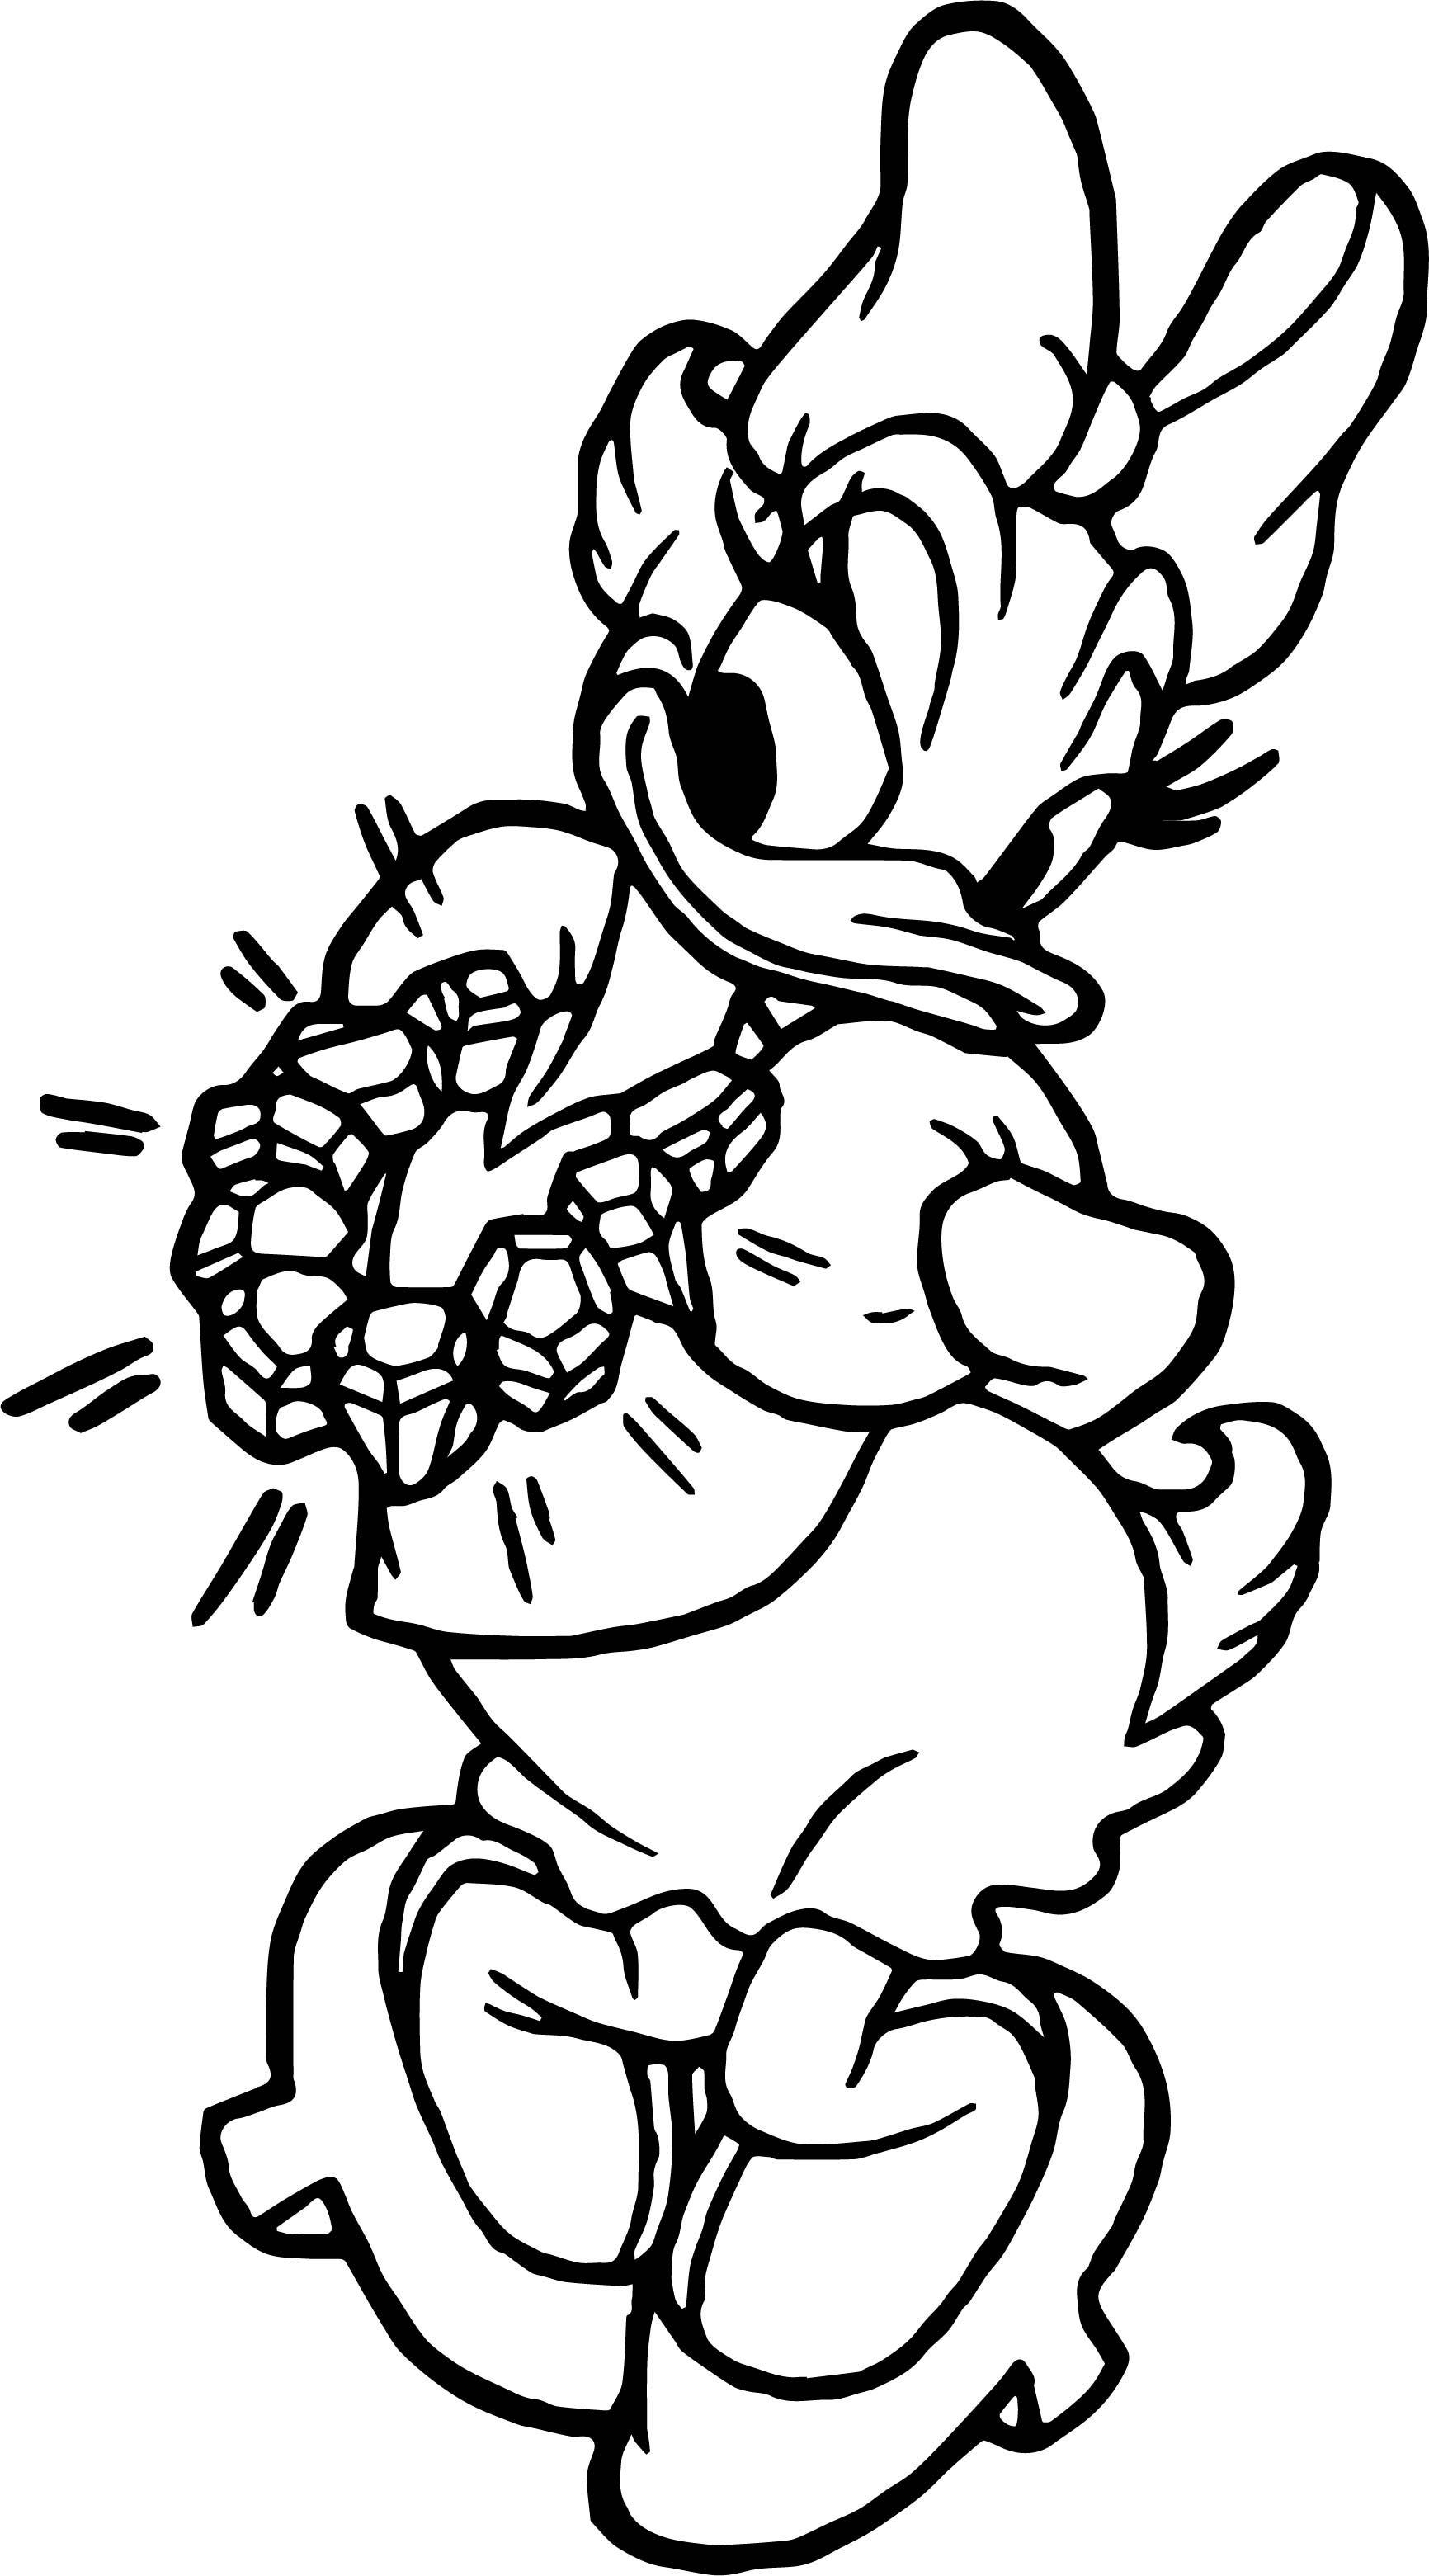 Daisy duck diamond coloring page mickey mouse pinterest